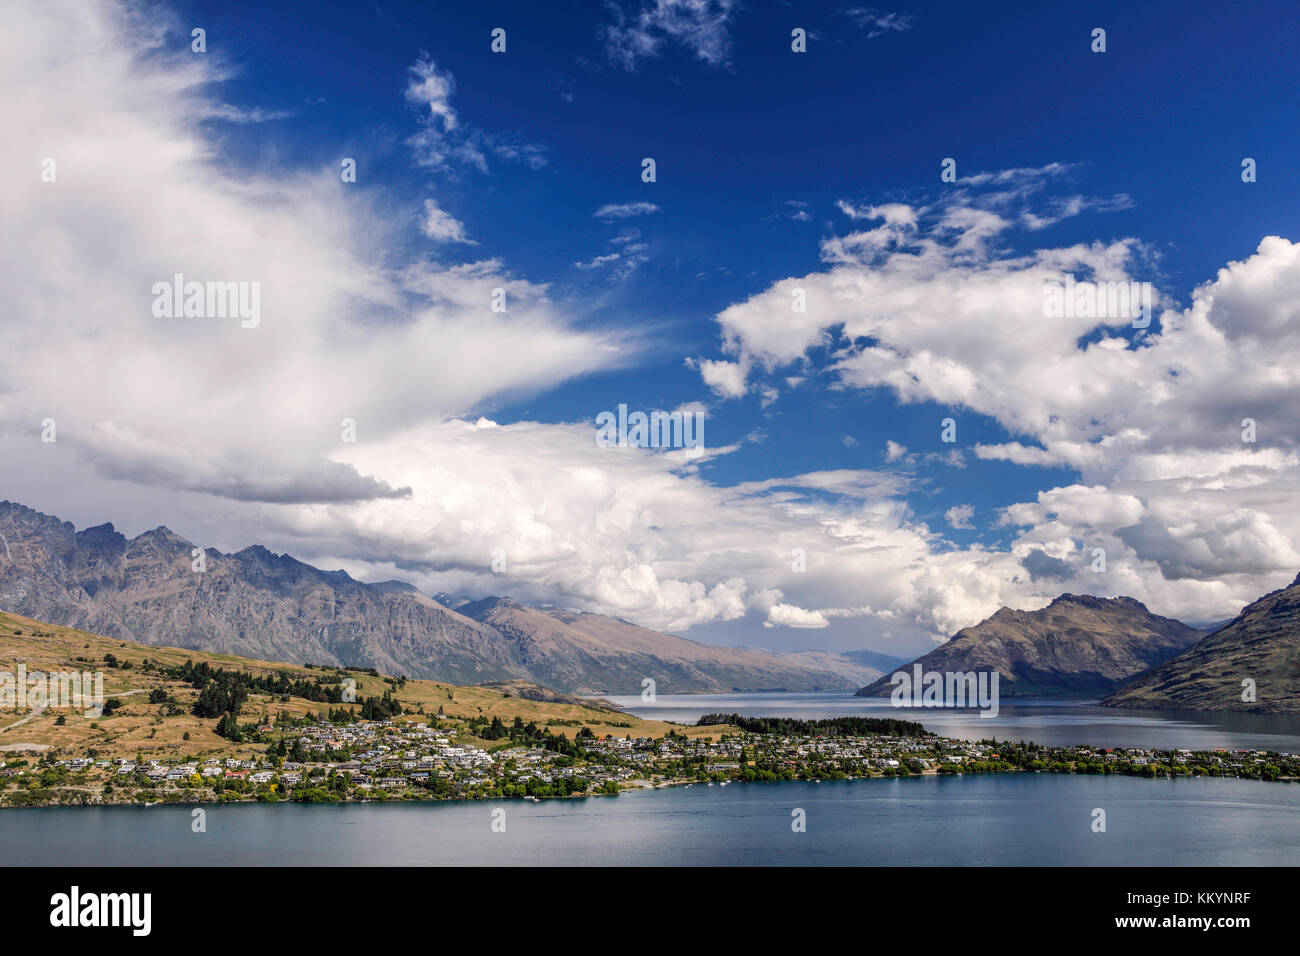 The clouds above Queenstown, Otago Region, New Zealand. - Stock Image